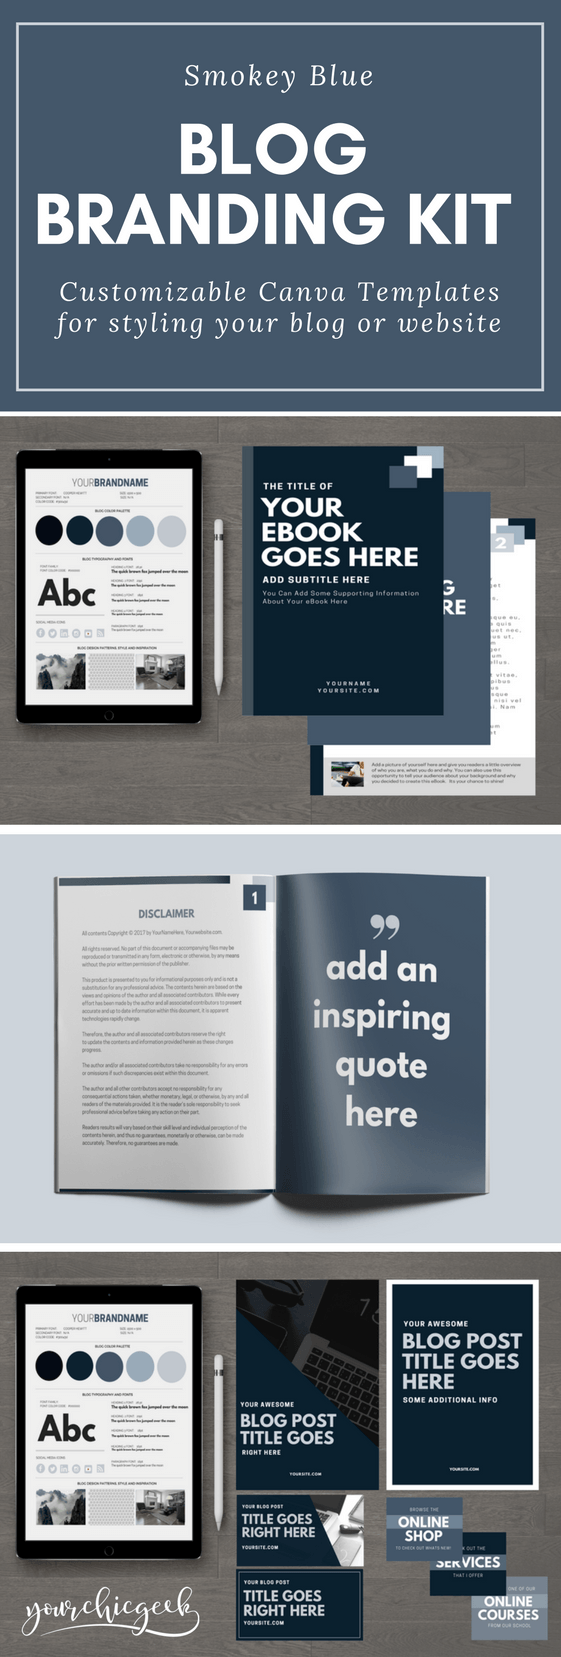 Smokey Blog Branding Kit